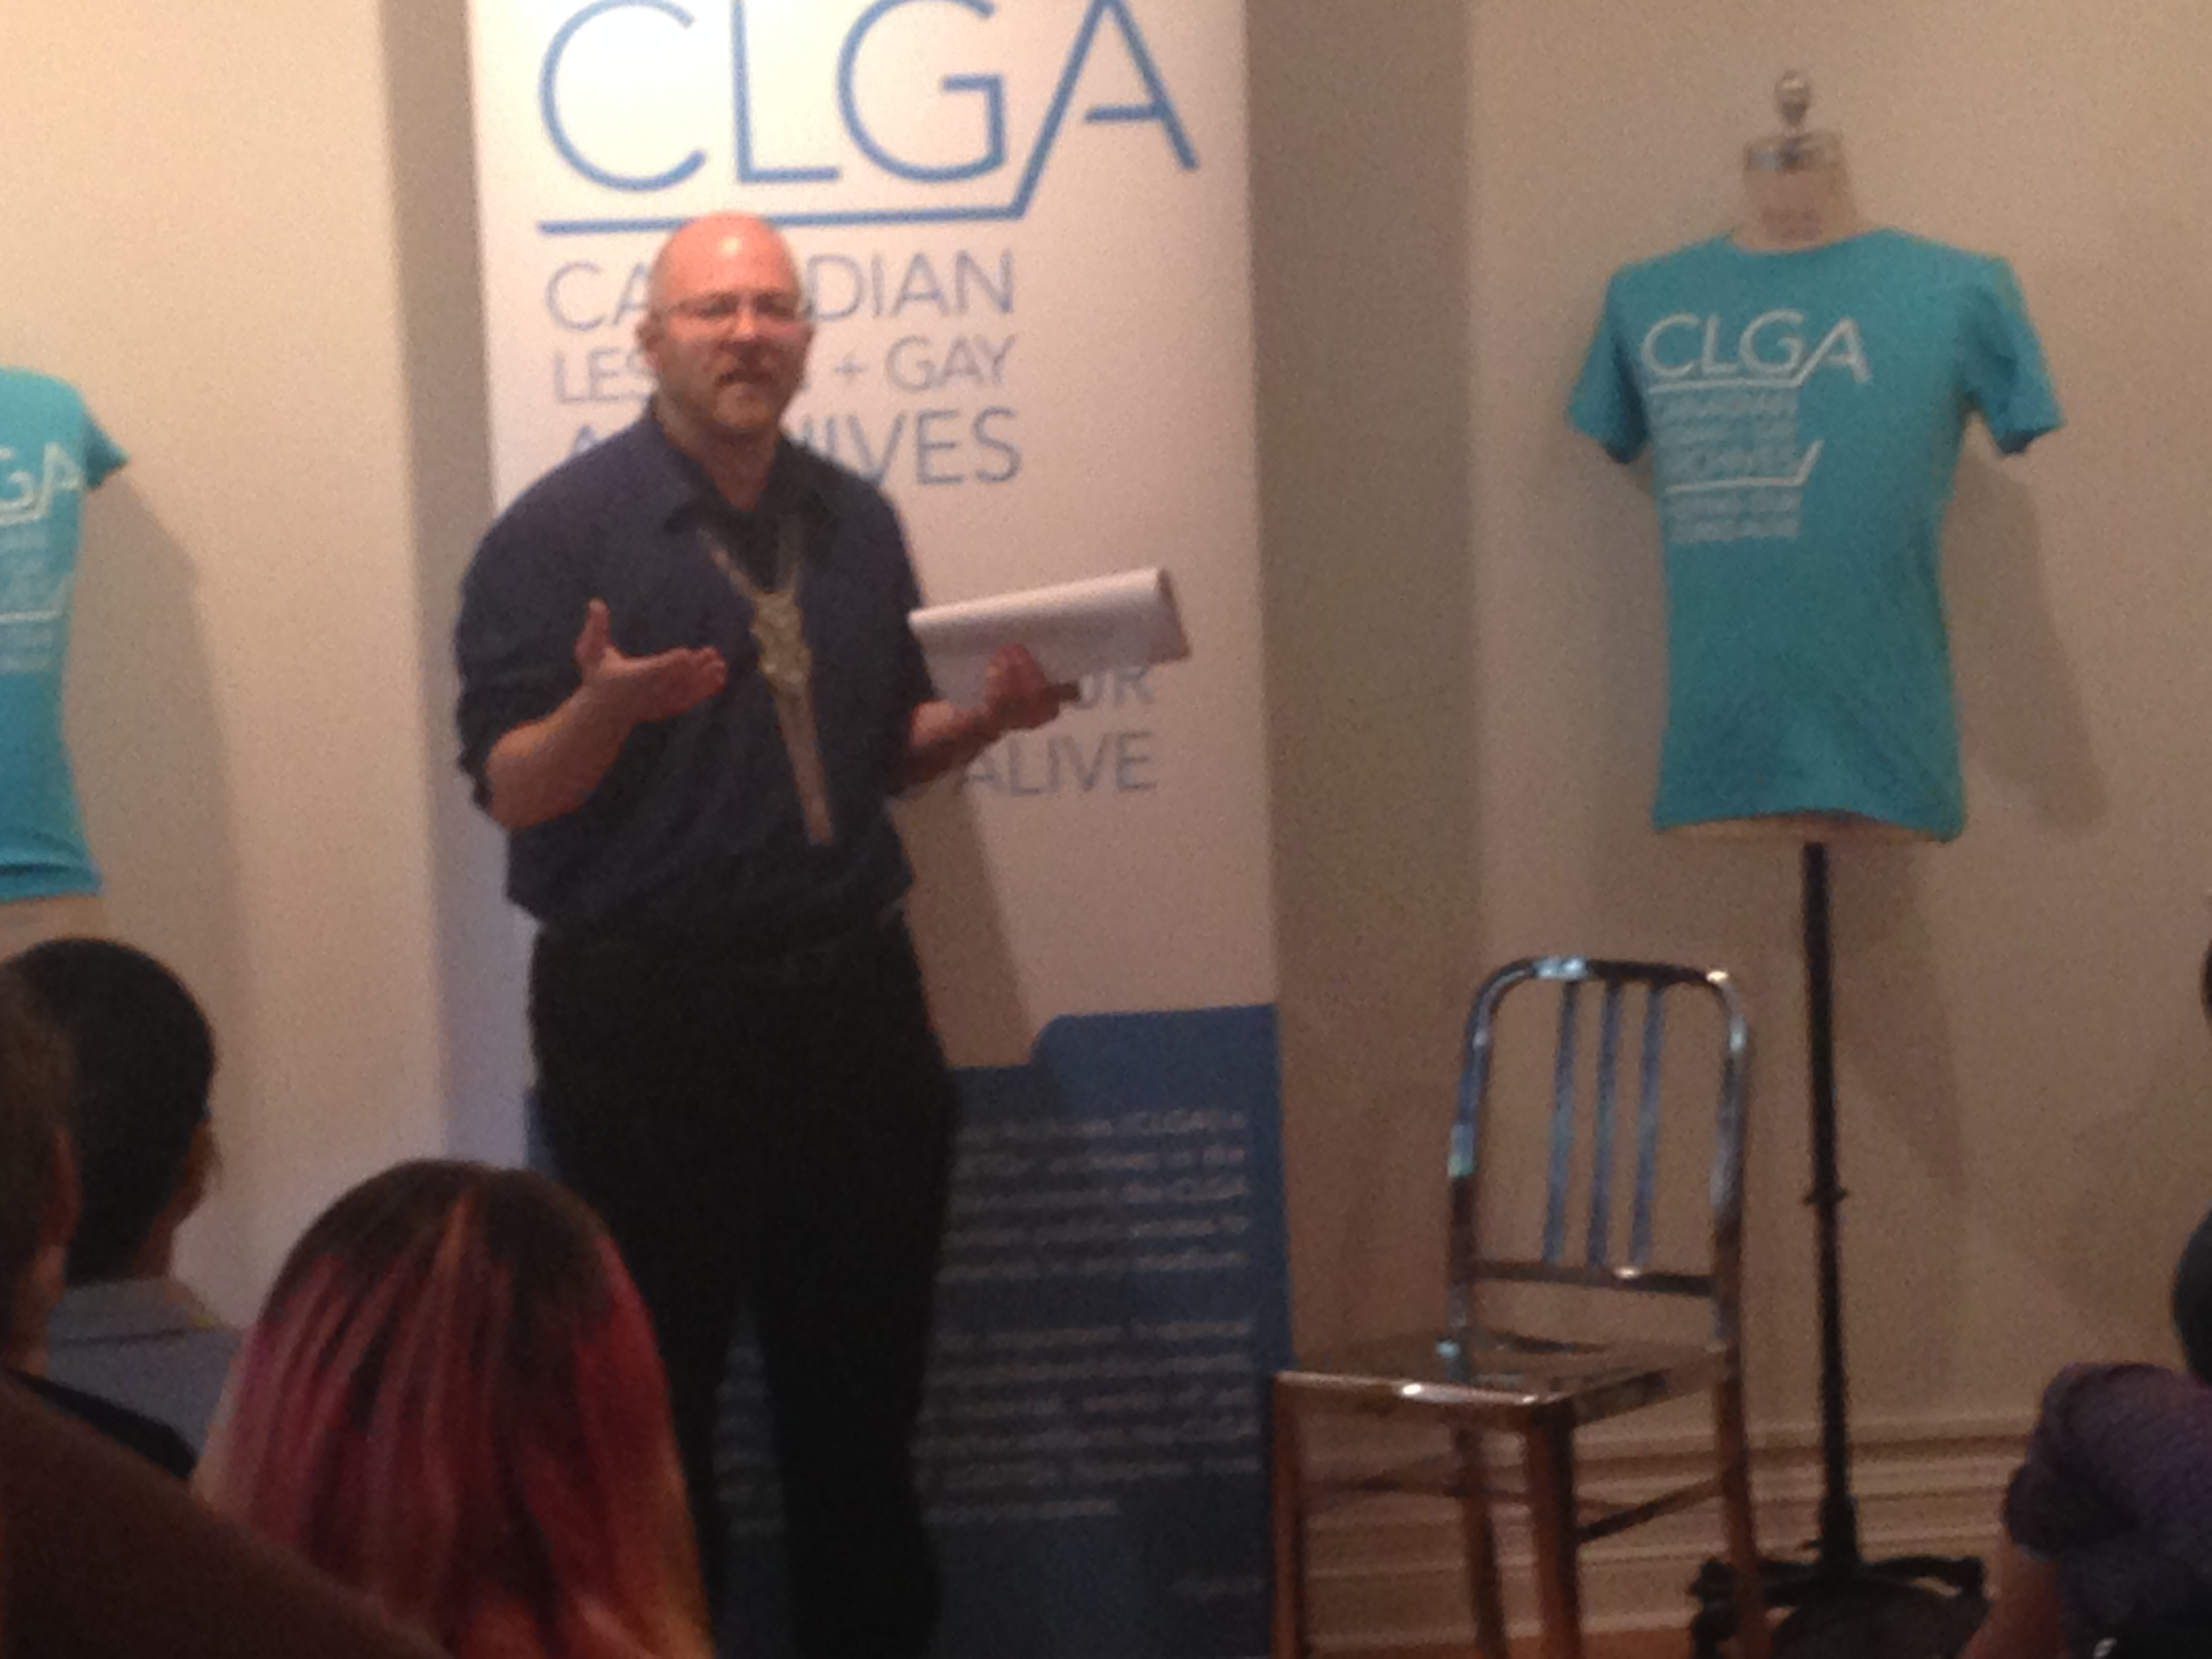 [Nick stands in front of a CLGA banner speaking to the crowd""